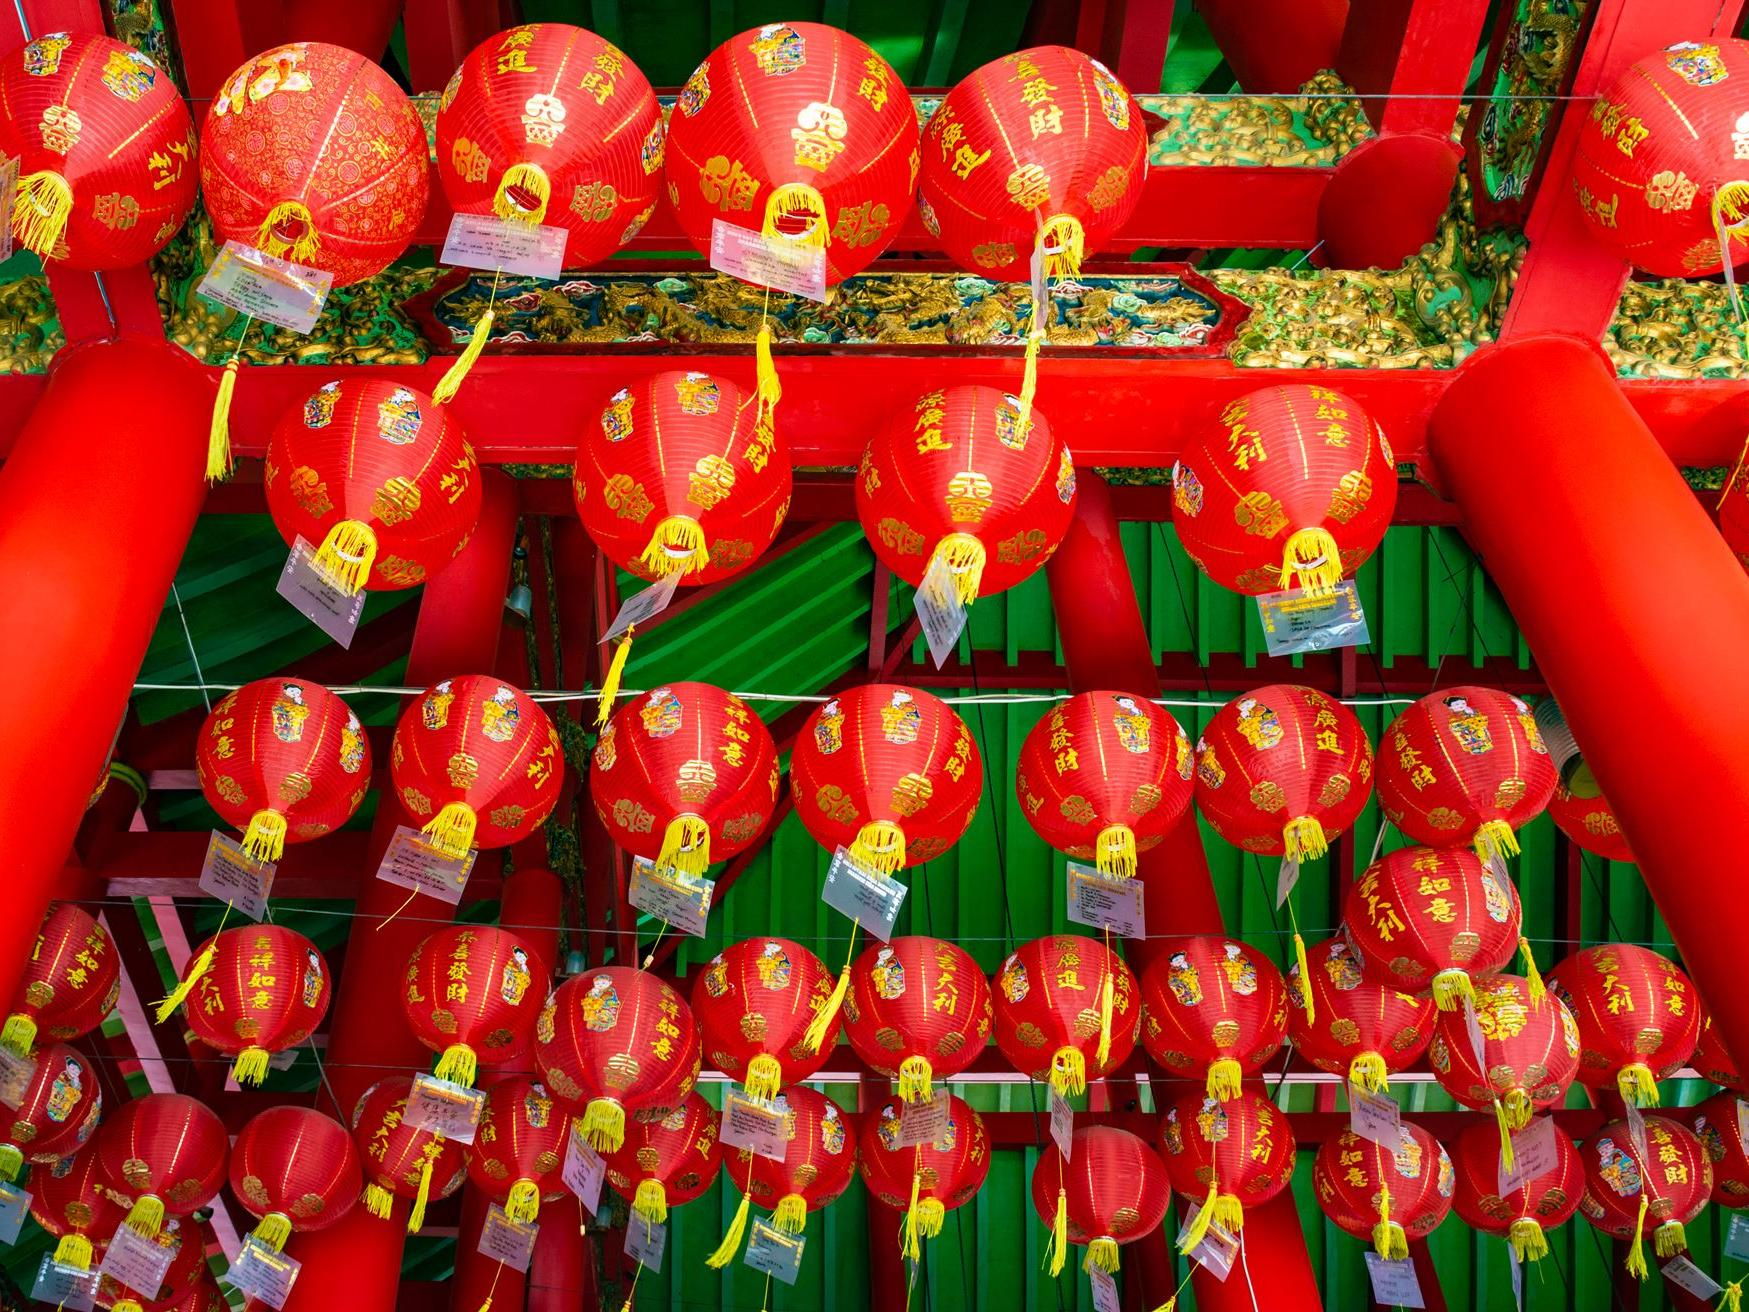 Rows of red chinese lanterns